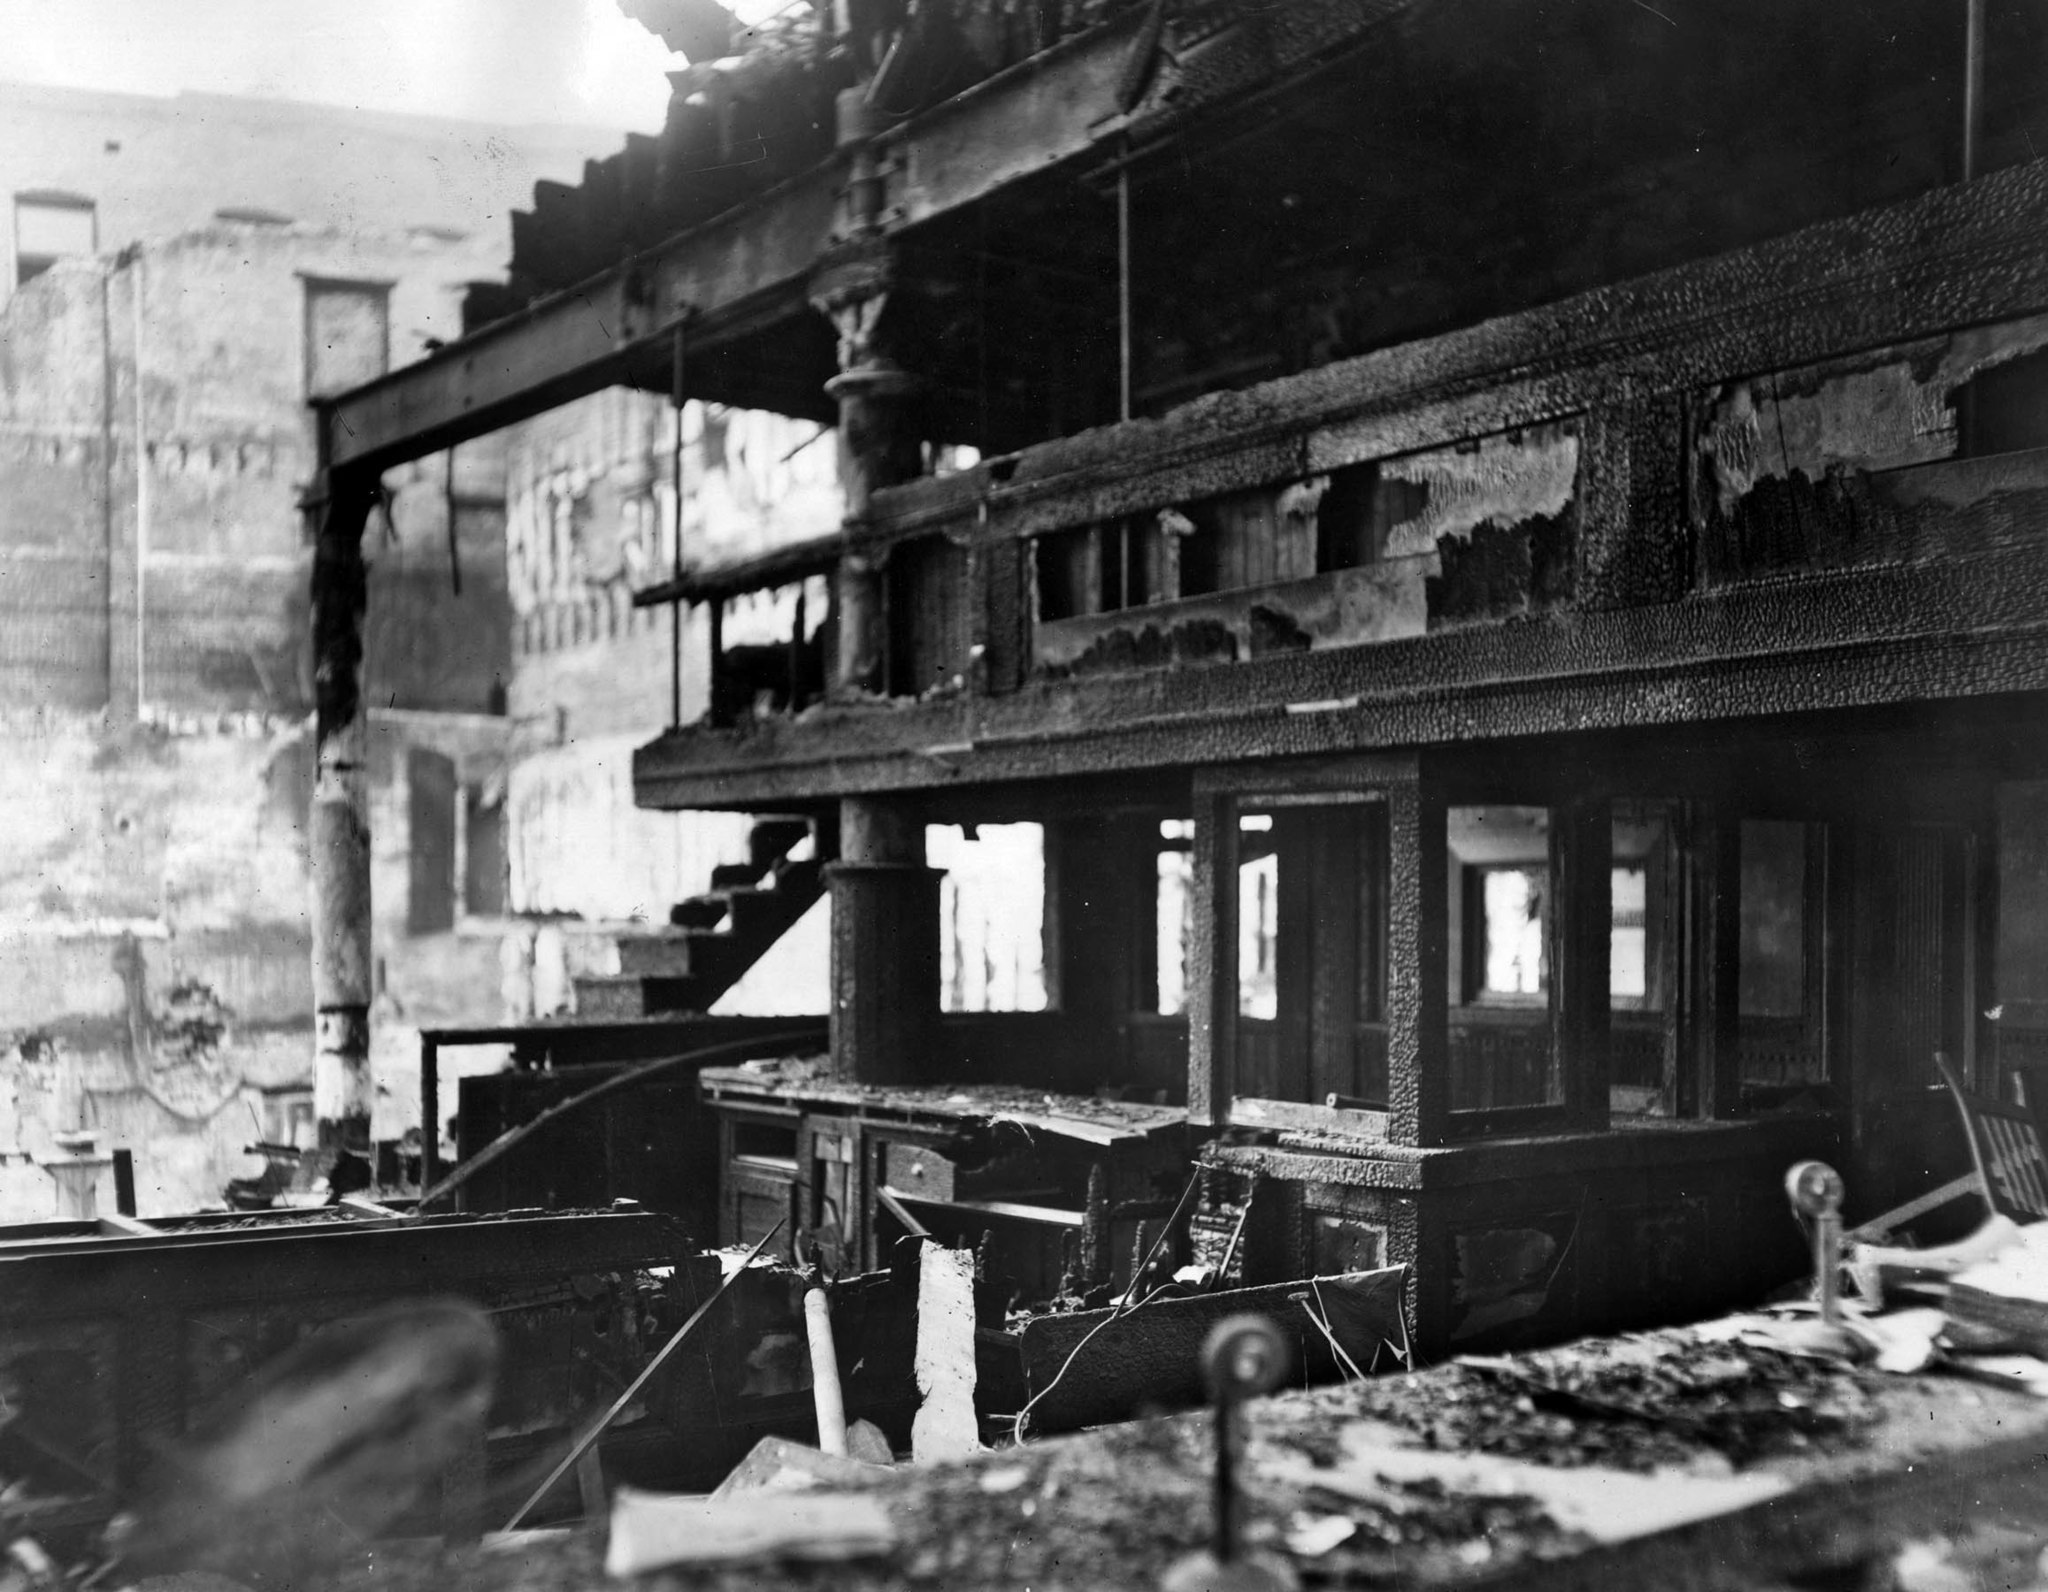 Oct. 1910: Another view of the burned out offices of the Los Angeles Times following the early morni